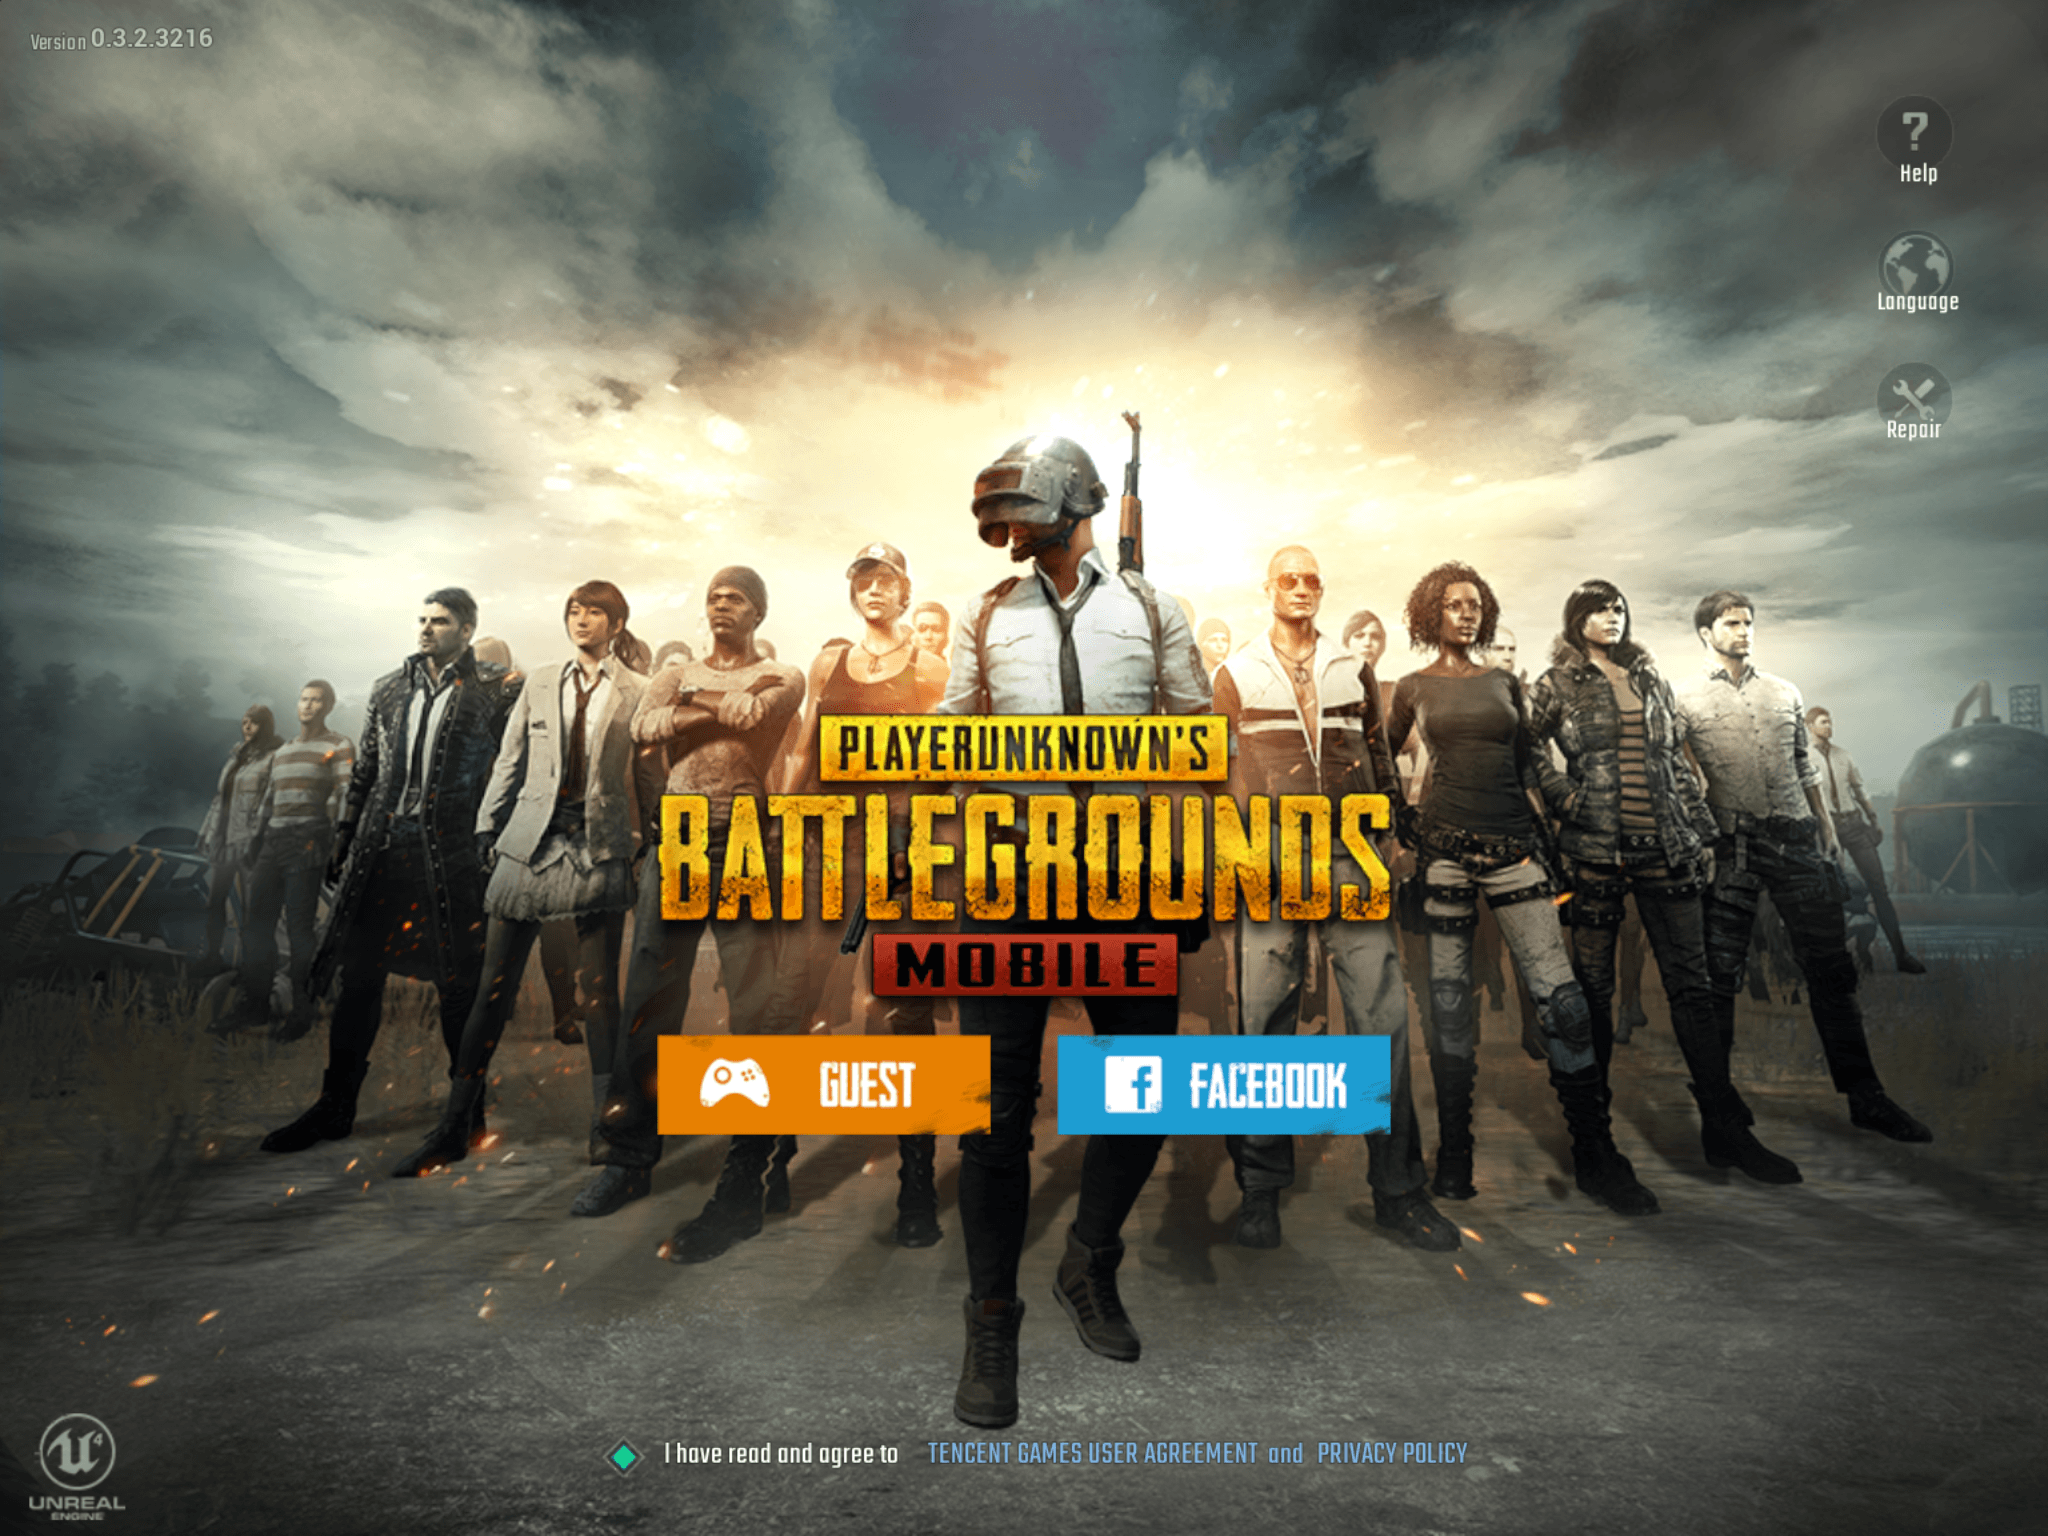 Download Pubg Mobile Wallpapers 720p 1080p 4k: PUBG Mobile HD Wallpapers